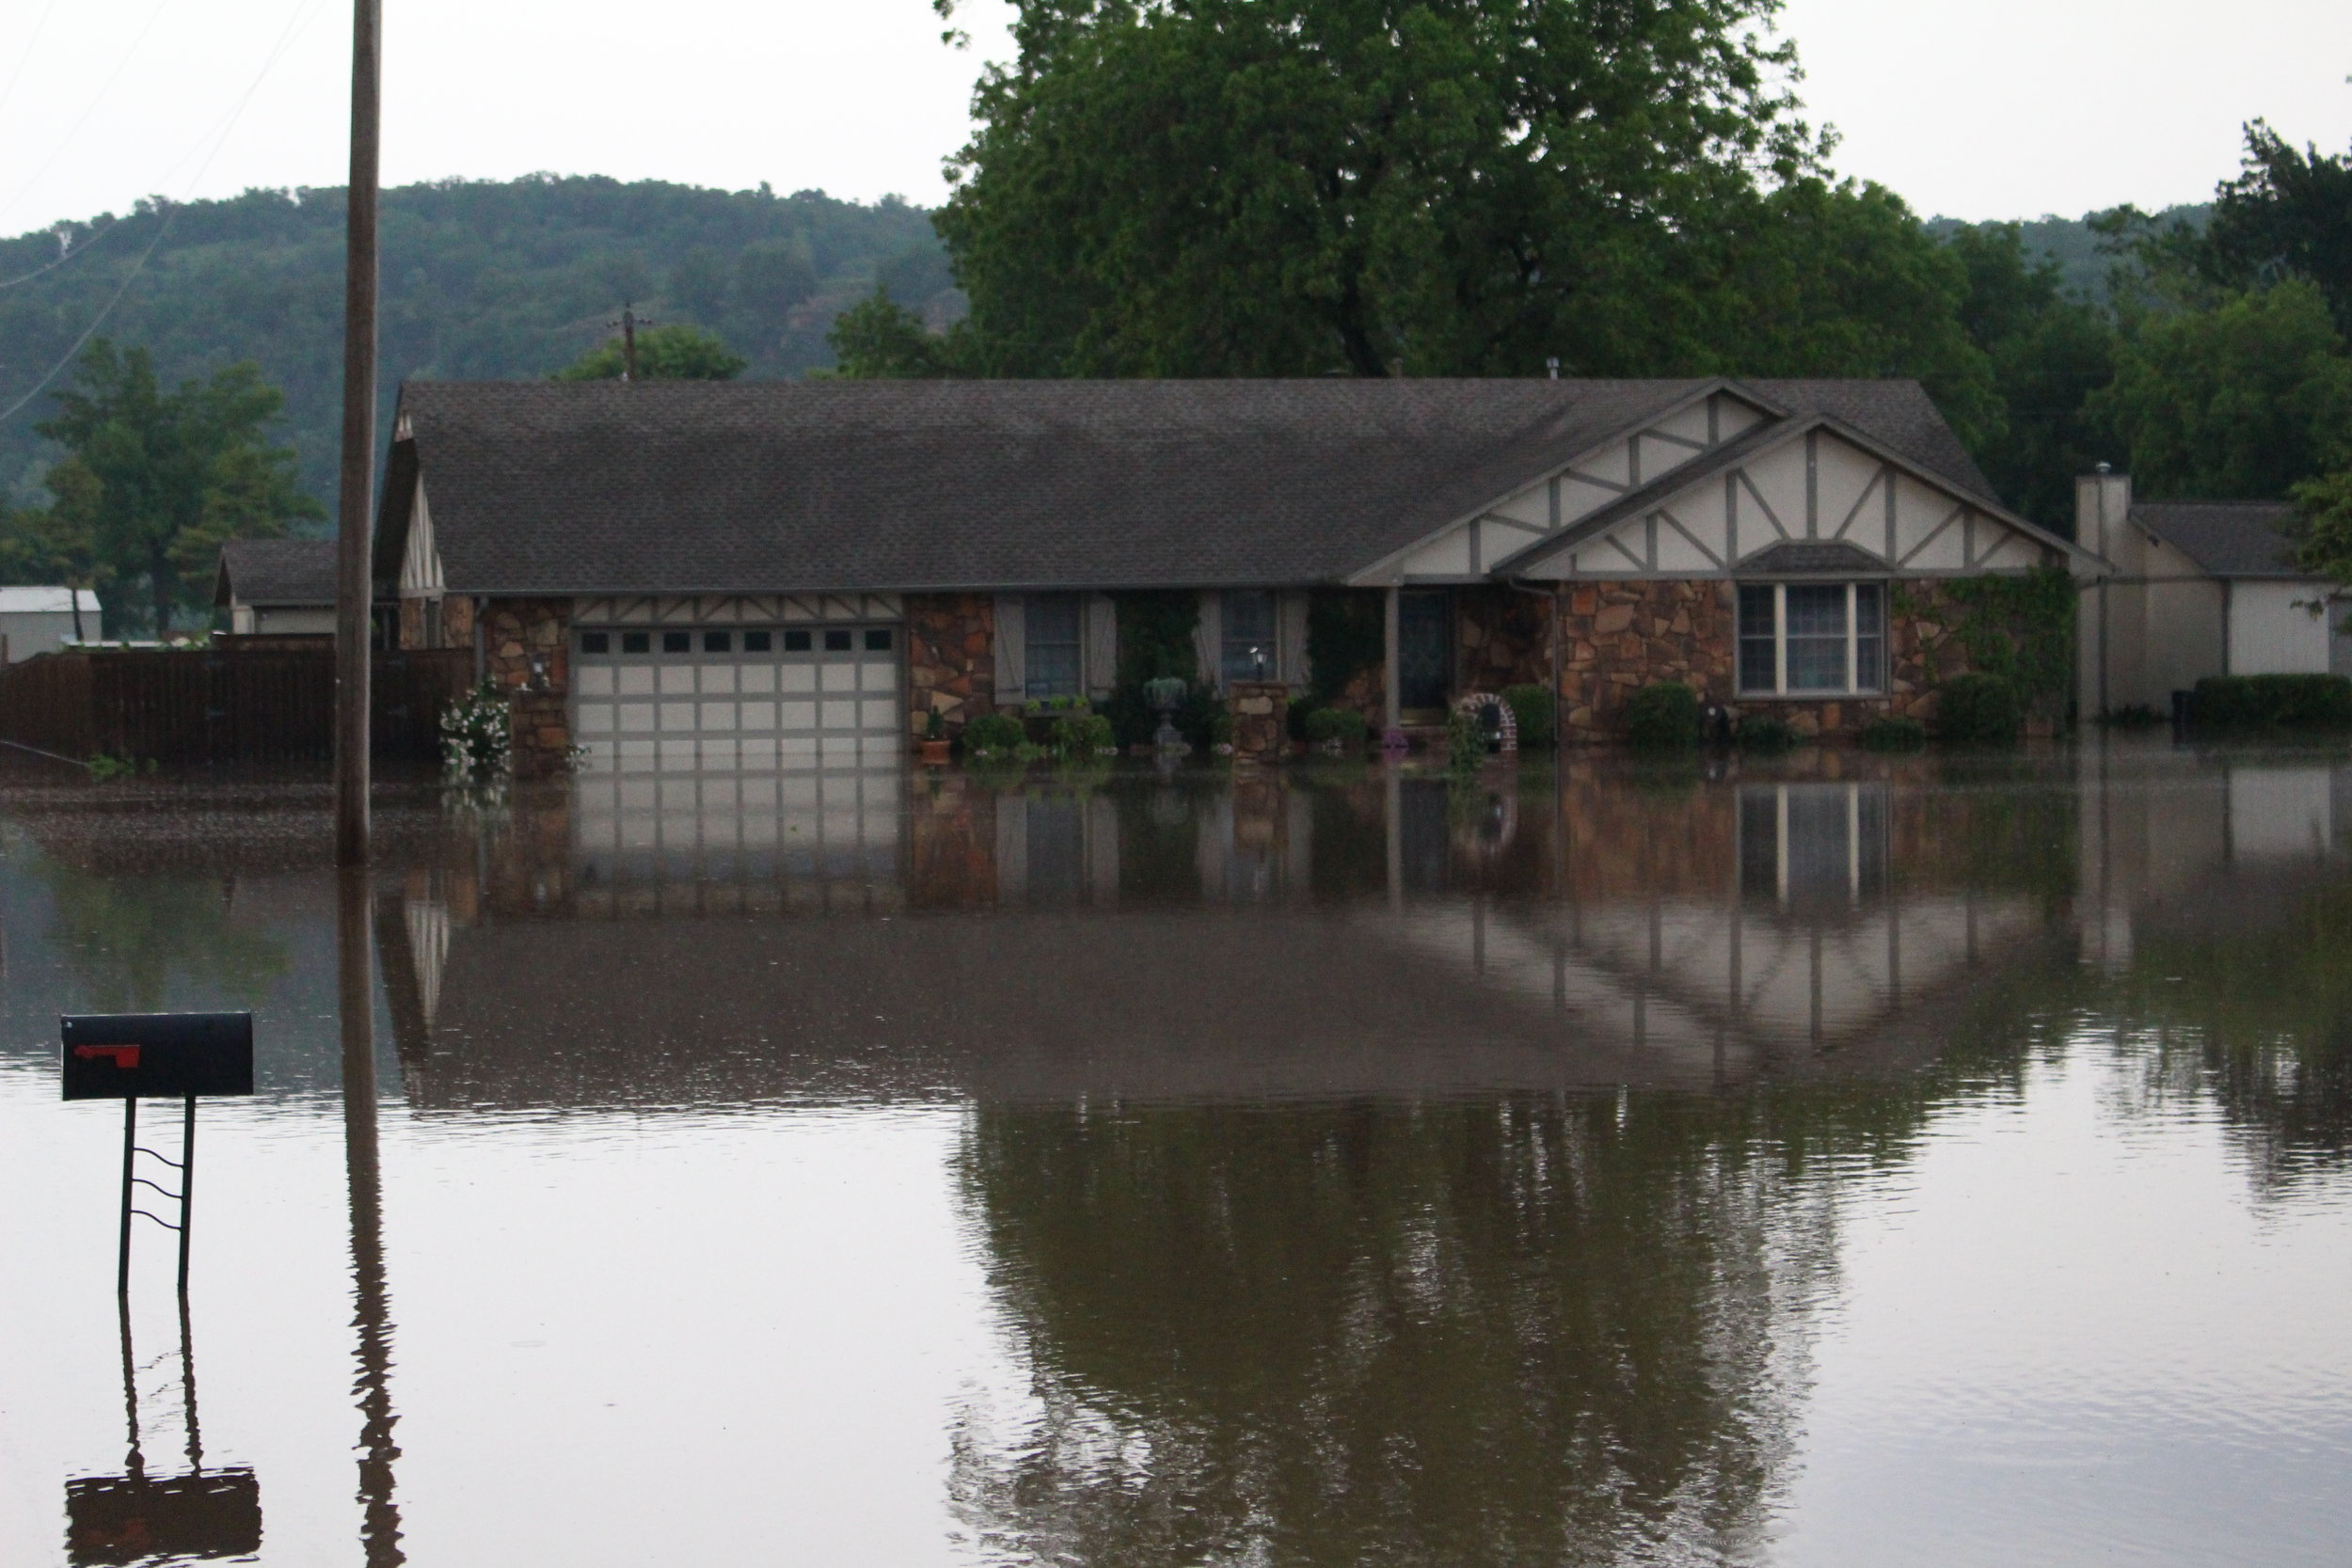 One of hundreds of flooded homes in Sand Springs, Oklahoma during a historic flooding event in May of 2019.